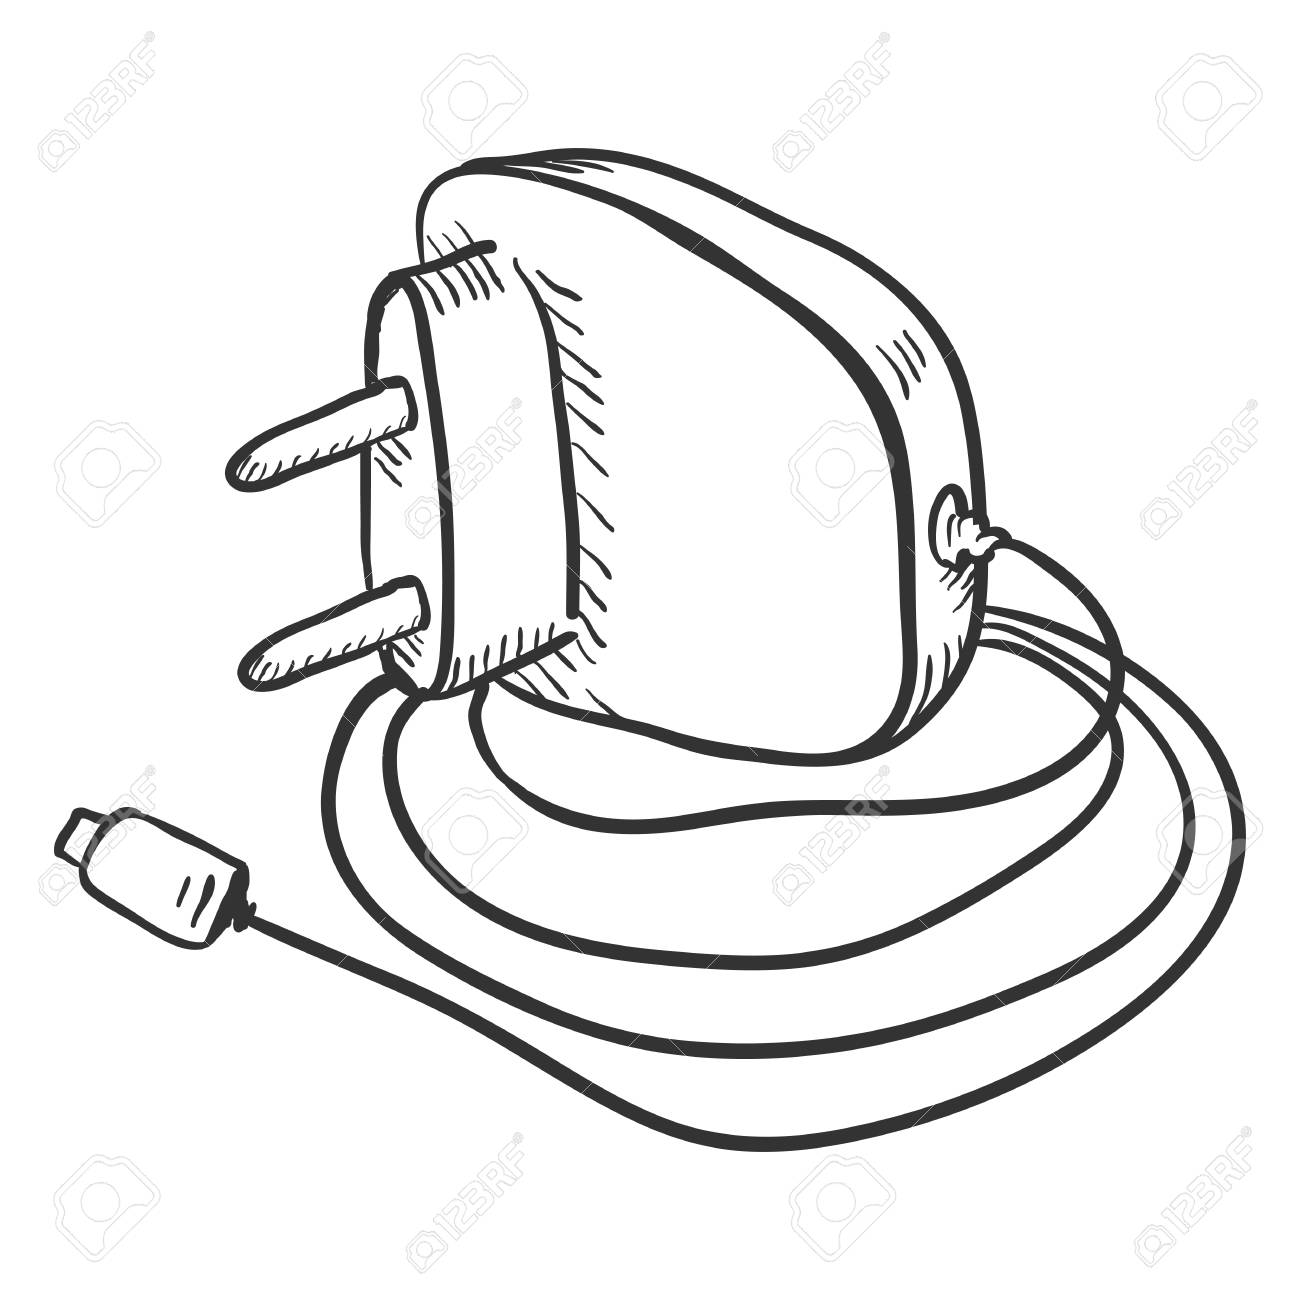 1300x1300 Vector Single Sketch Charger For Mobile Phones On White Background